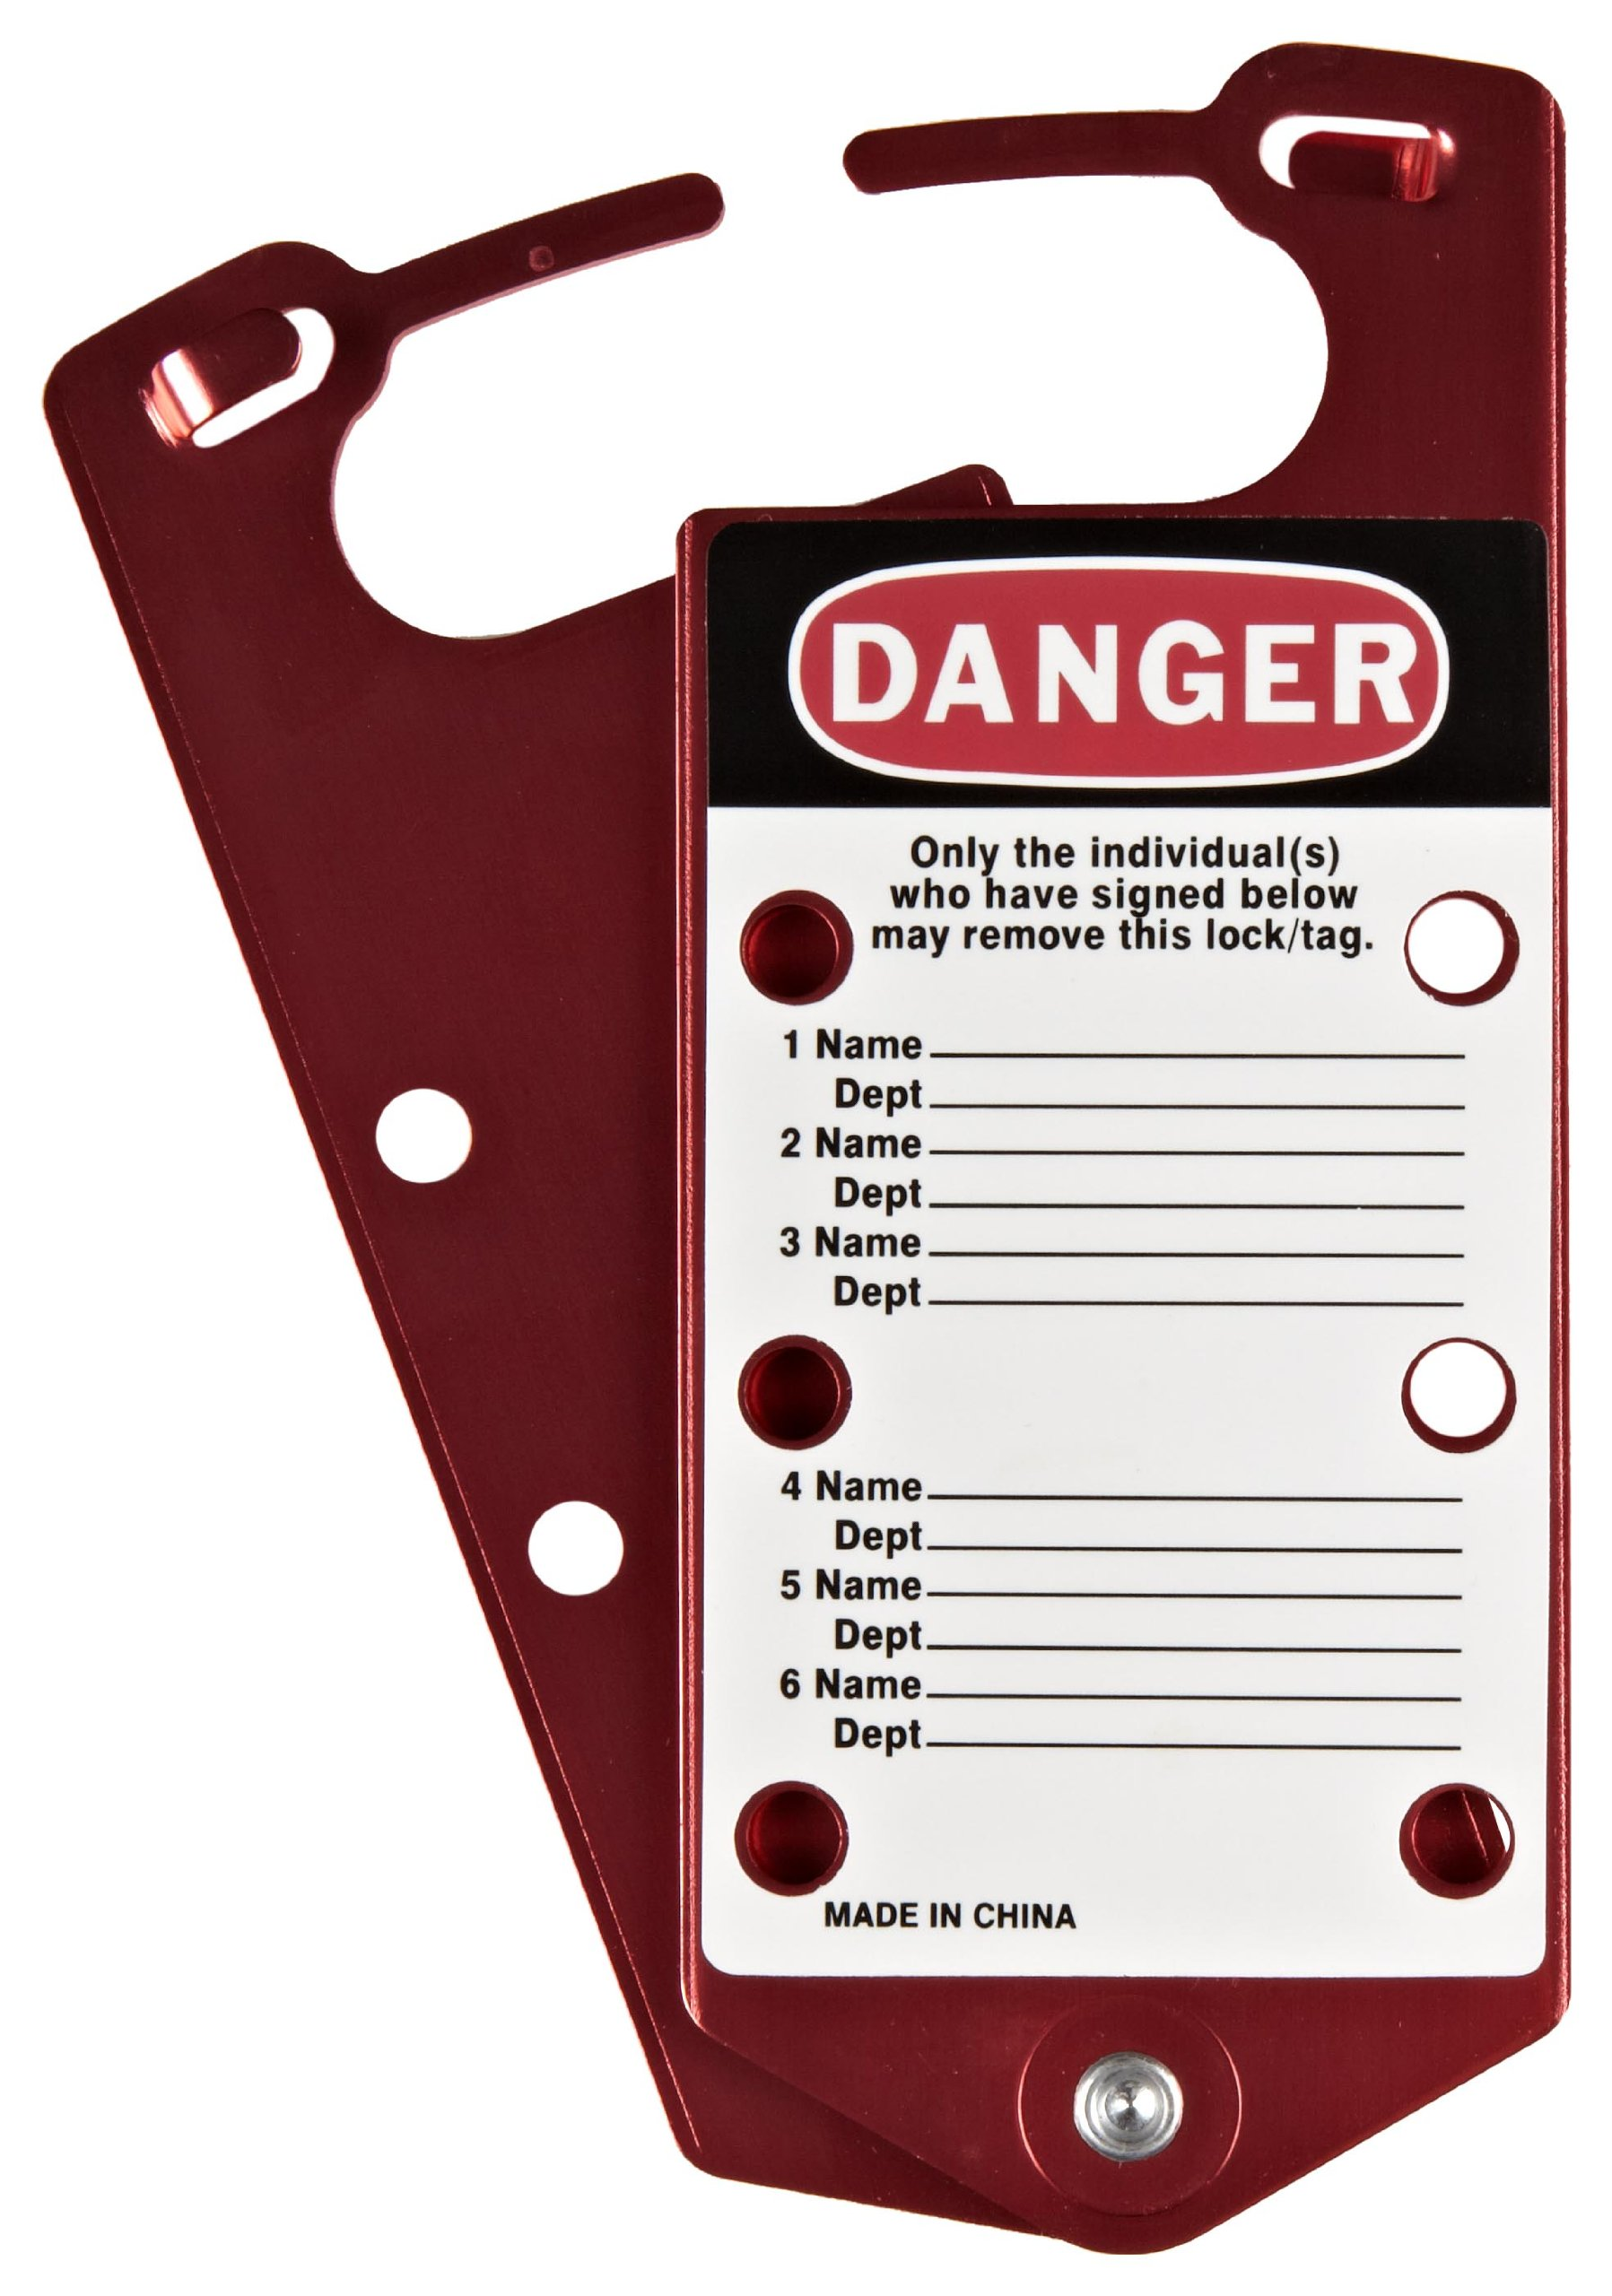 Brady Anodized Aluminum Labeled Lockout Hasp, Red (Pack of 5)